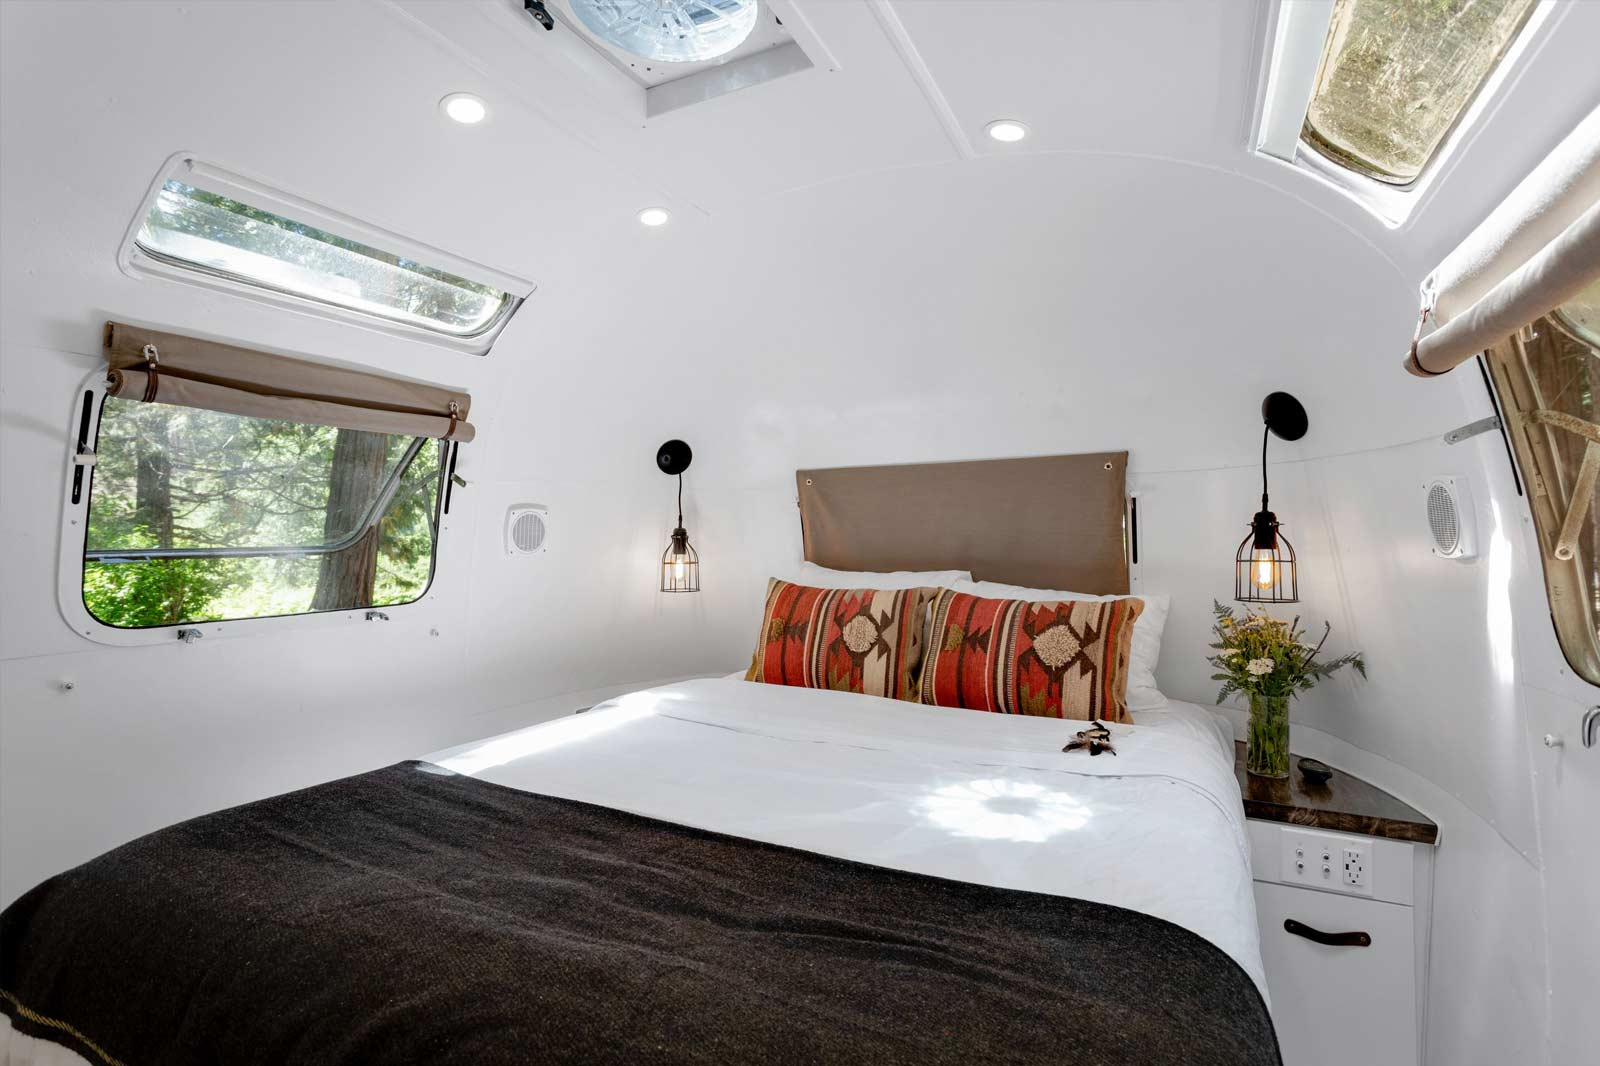 image of creekside airstream accommodation bedroom